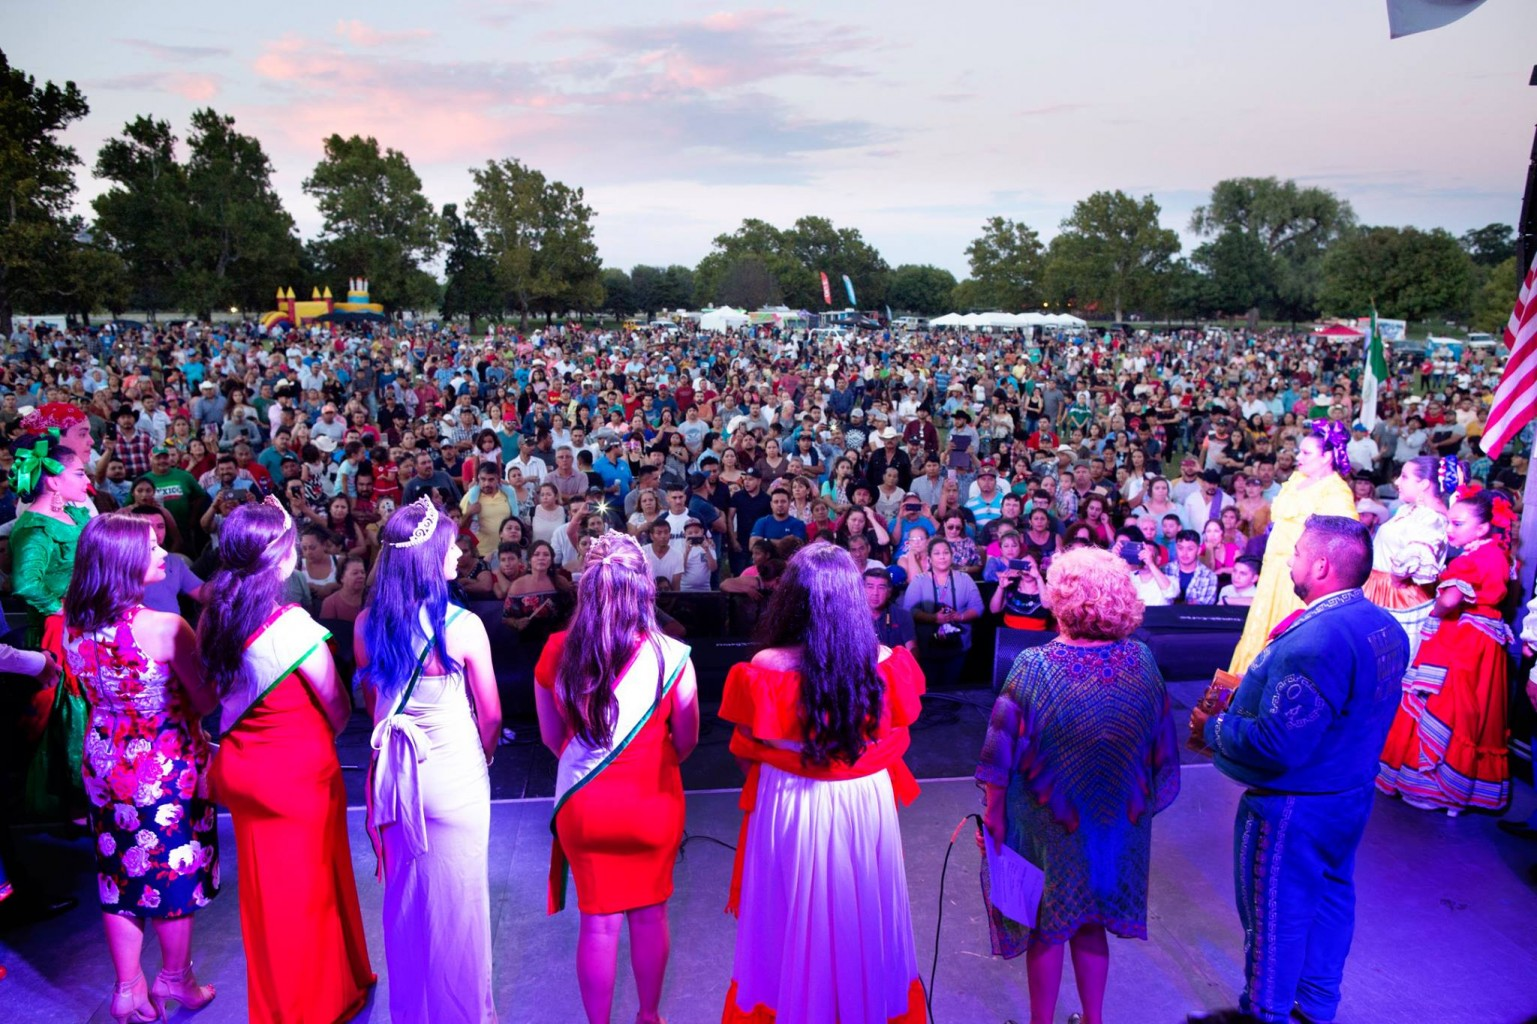 Oklahoma's Largest Cinco de Mayo Festival  to be Held at Wiley Post Park